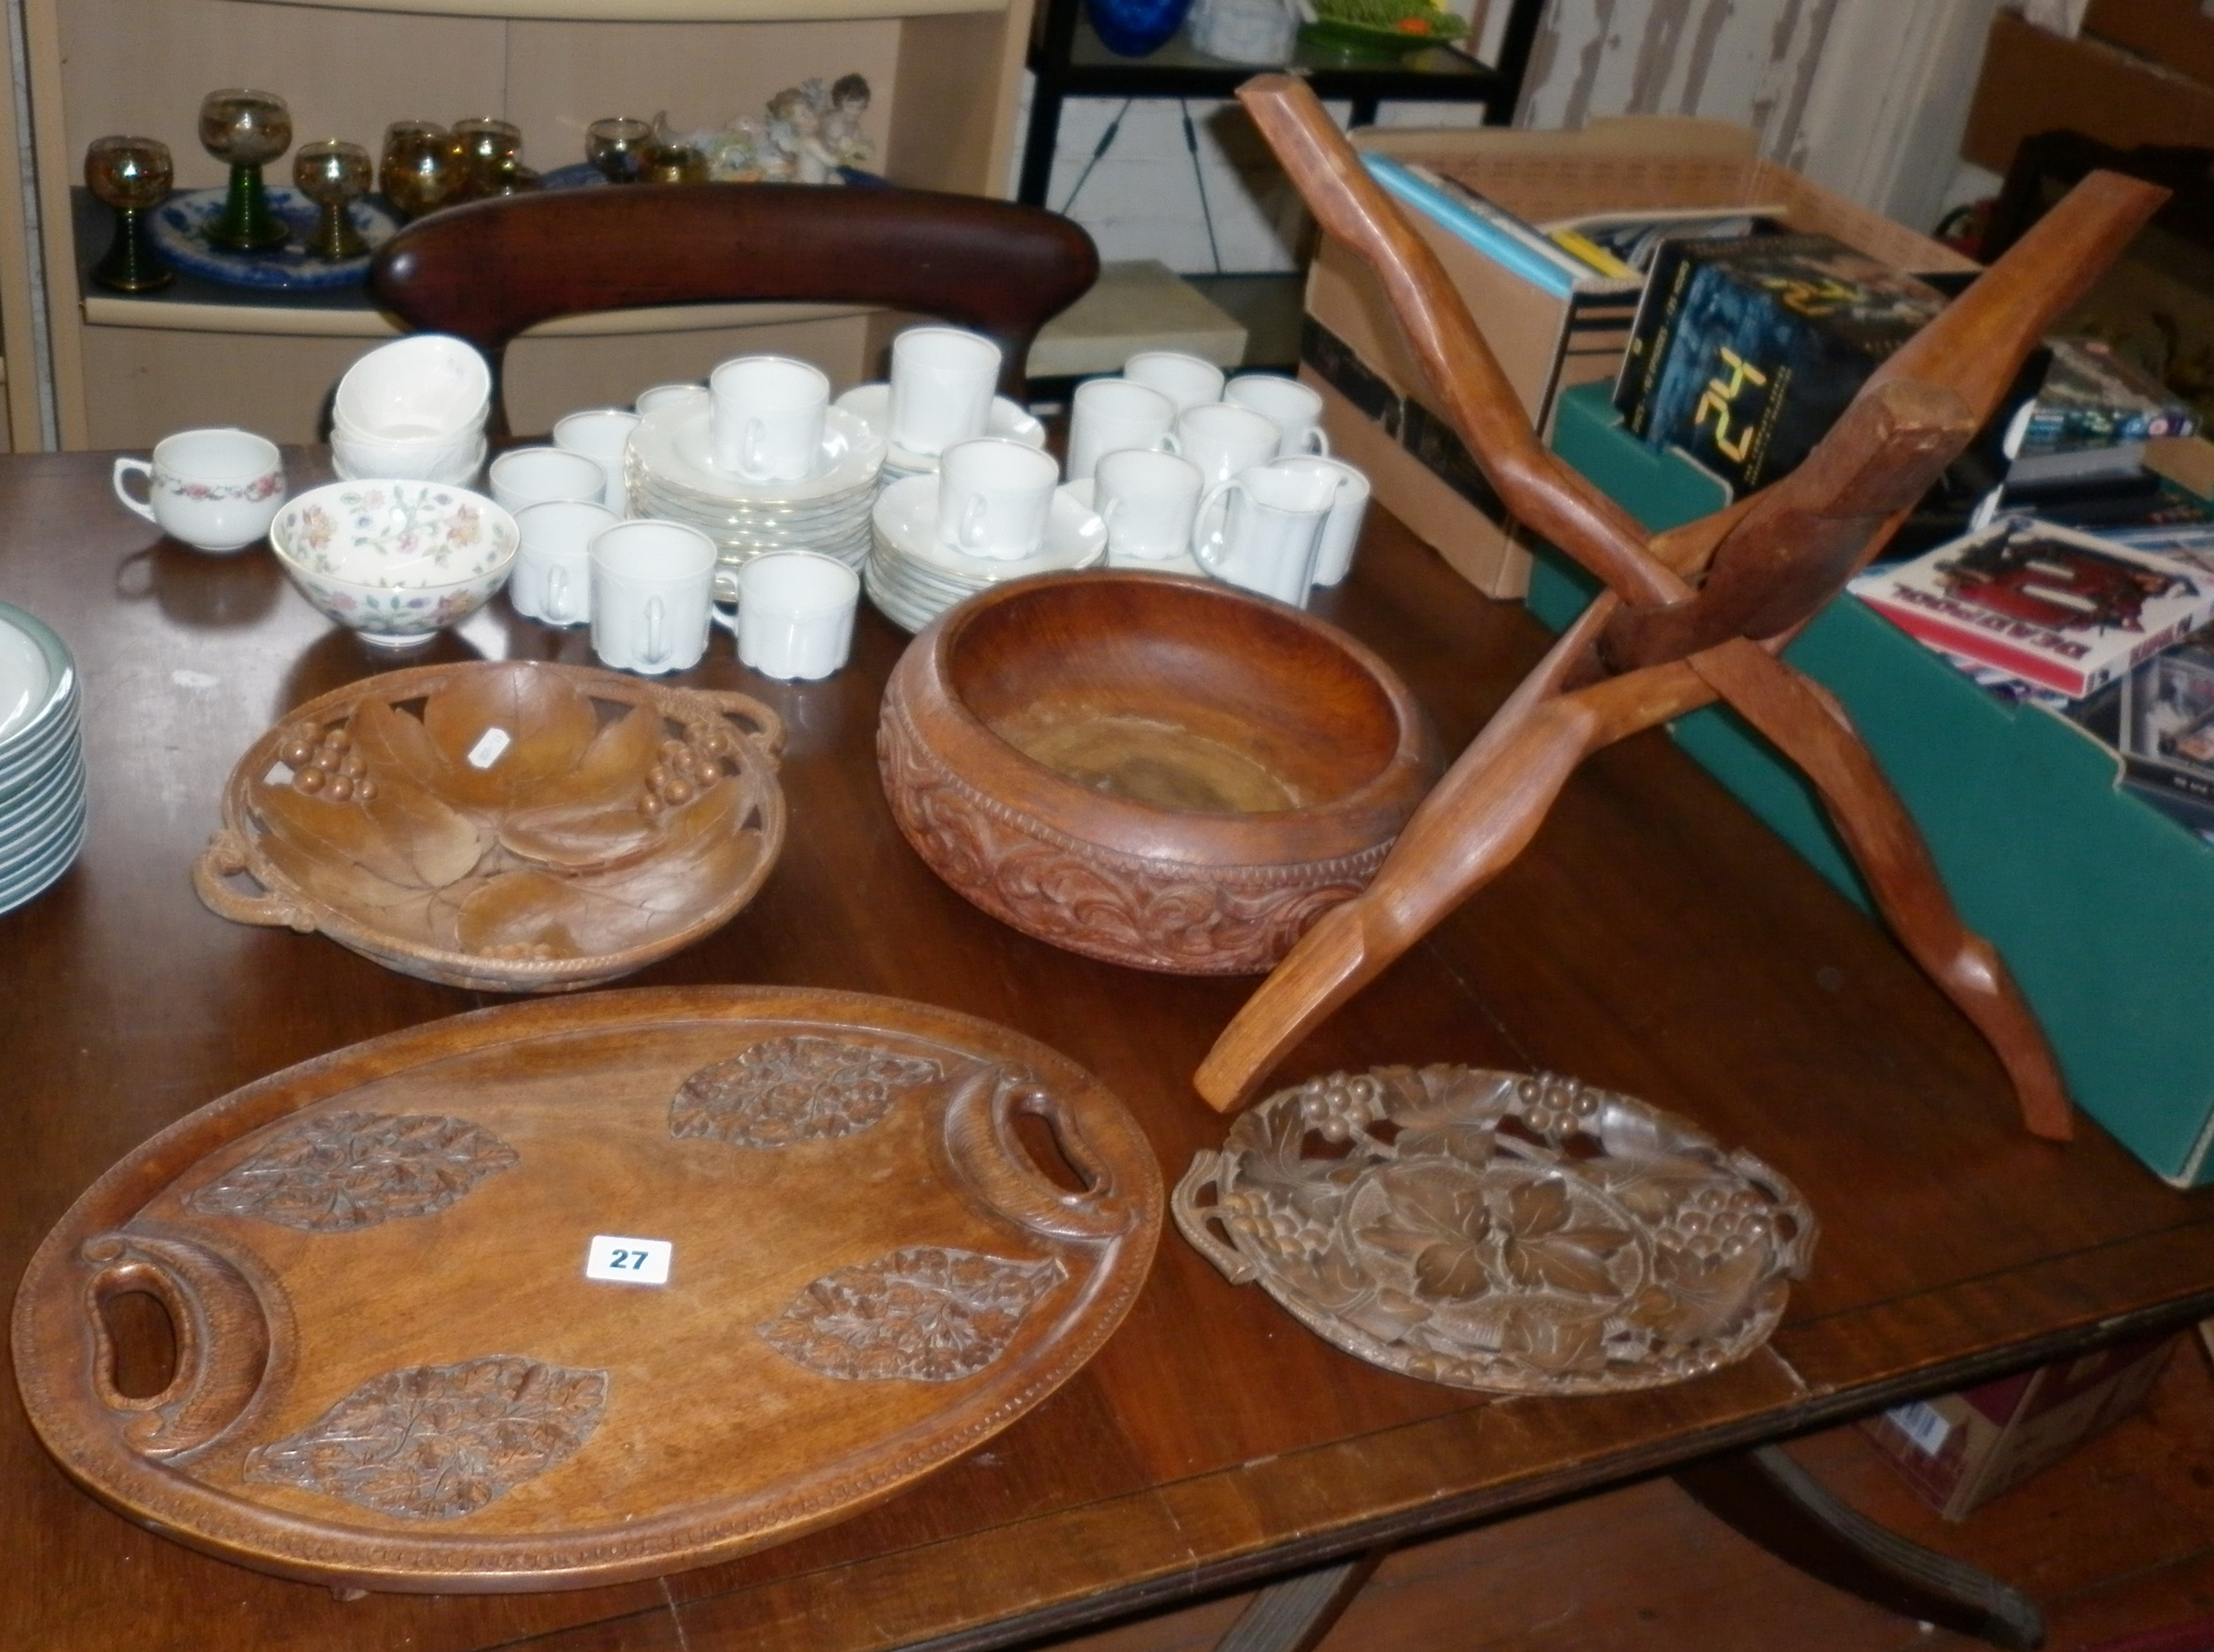 Three carved wooden fruit bowls, an oval carved wooden tray and a carved wood intertwined folding